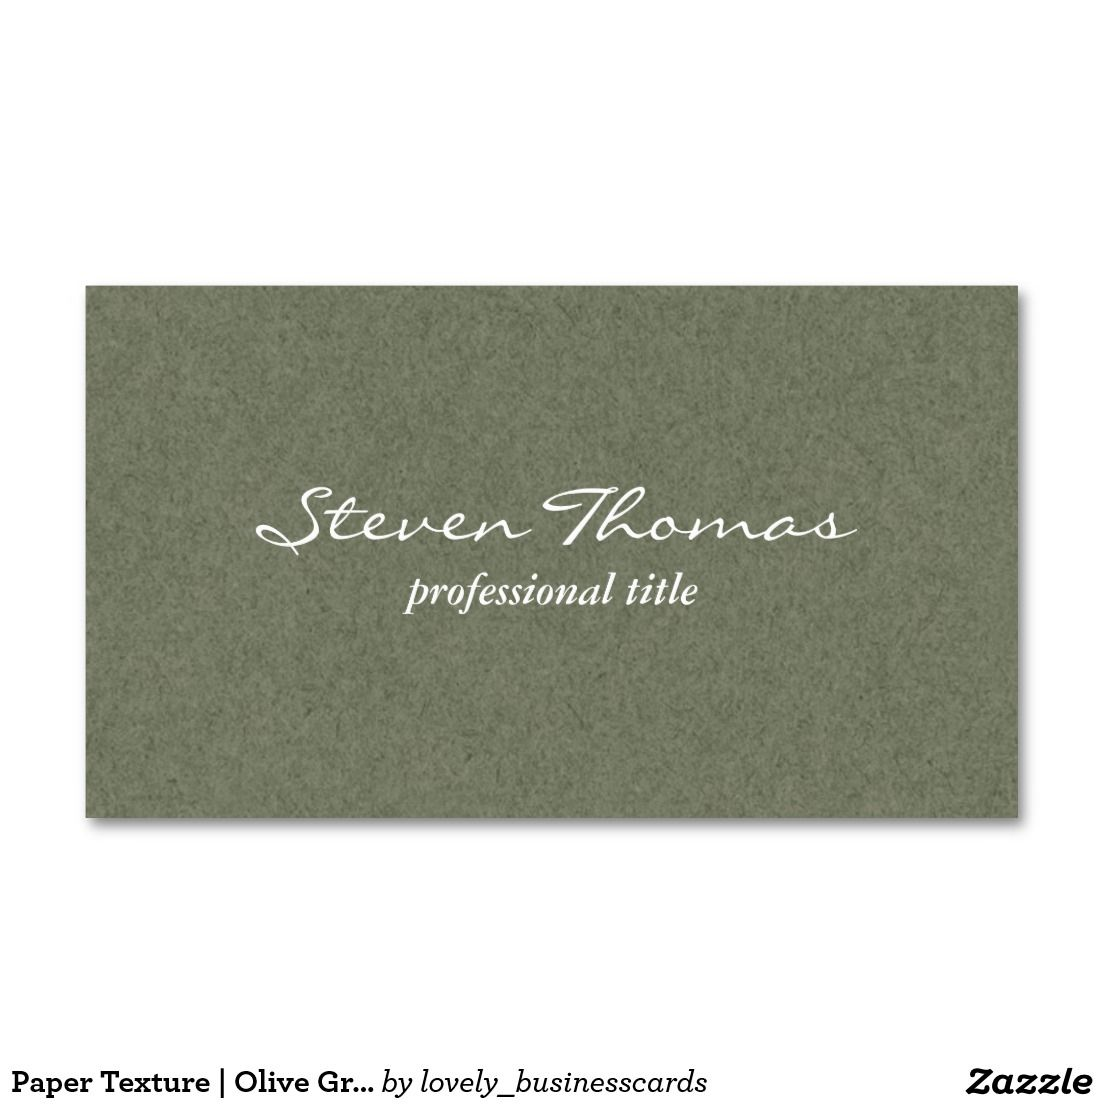 Paper Texture | Olive Green Business Card | Green business, Business ...